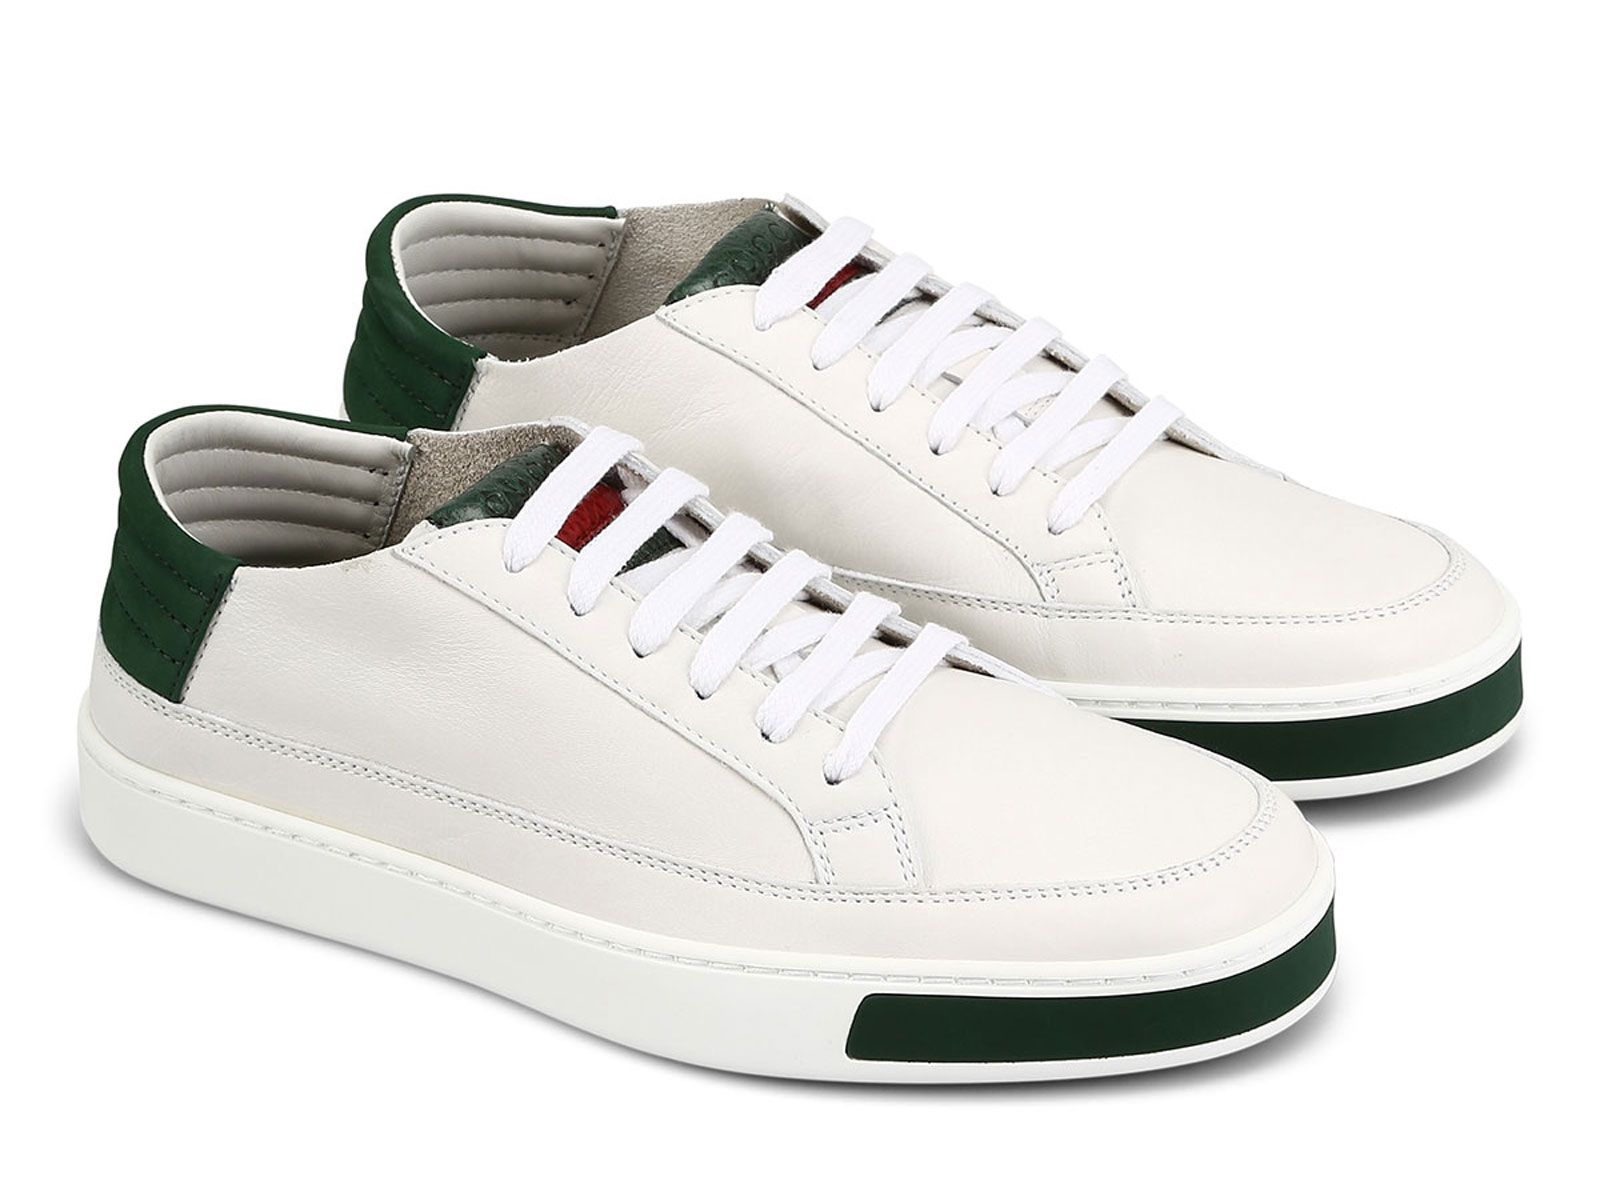 Gucci low top white leather and ayers snake sneakers - Italian Boutique €315